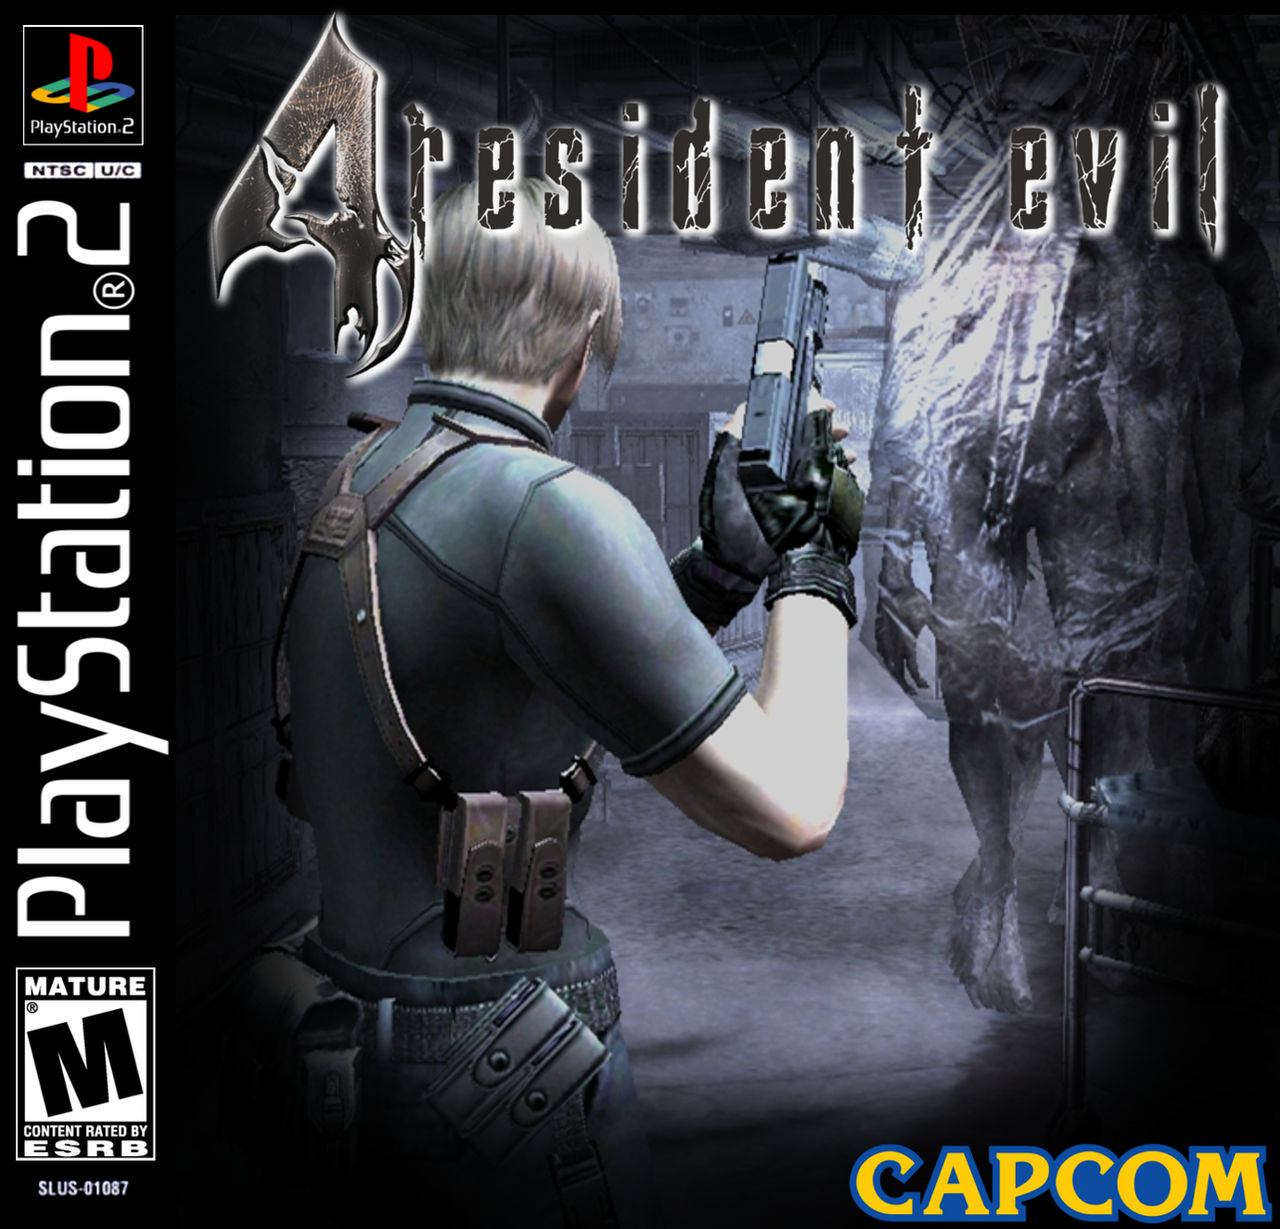 Resident Evil 4 Ps2 Jewel Case Cover By Startingagain On Deviantart